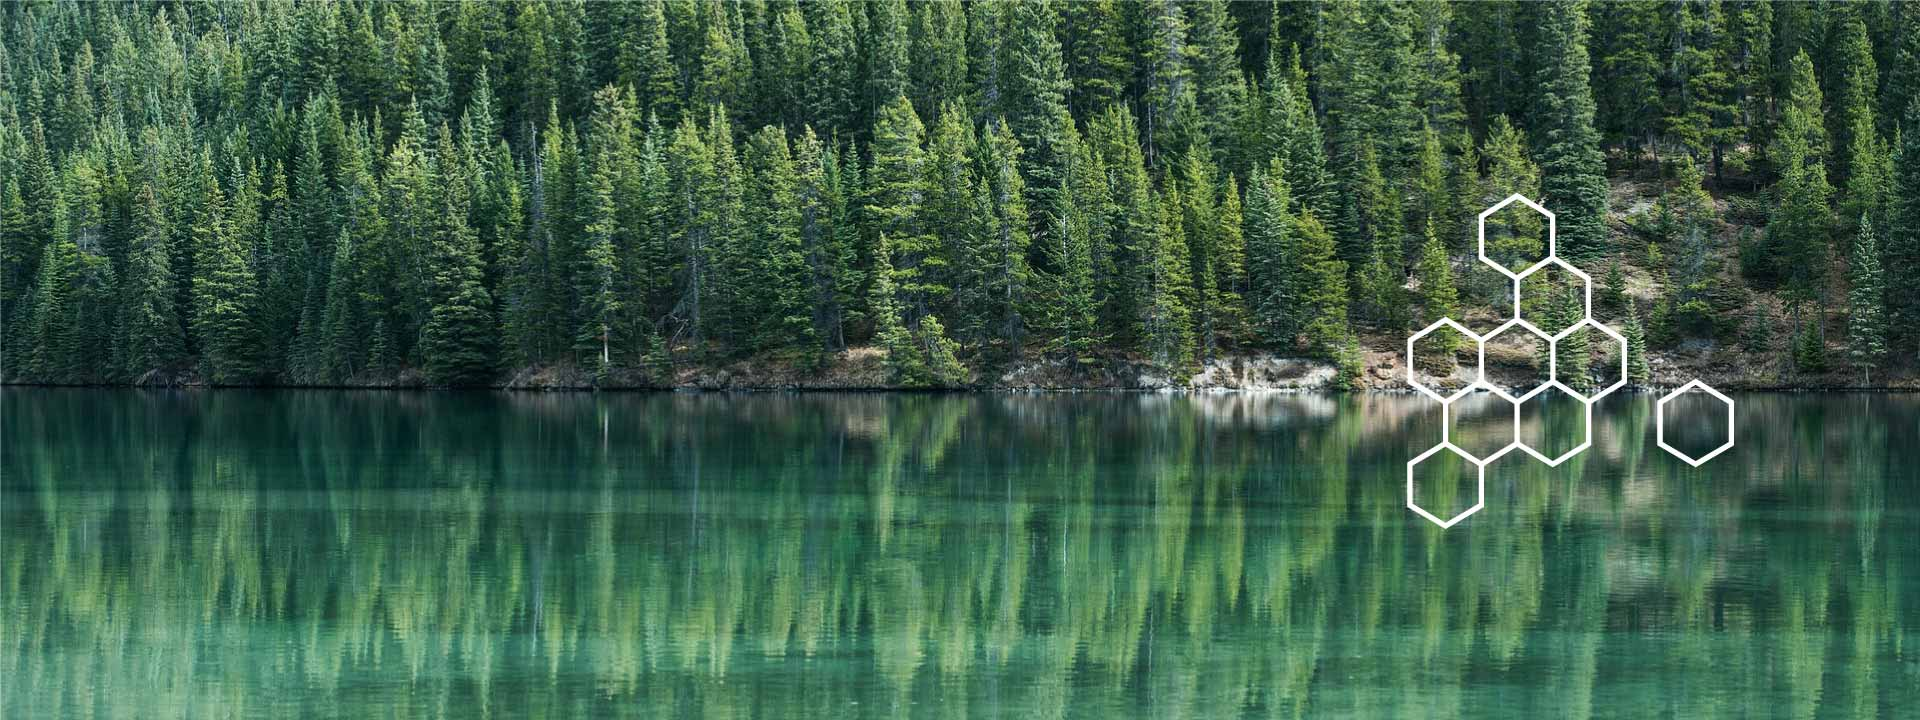 Evergreen trees reflecting in a lake